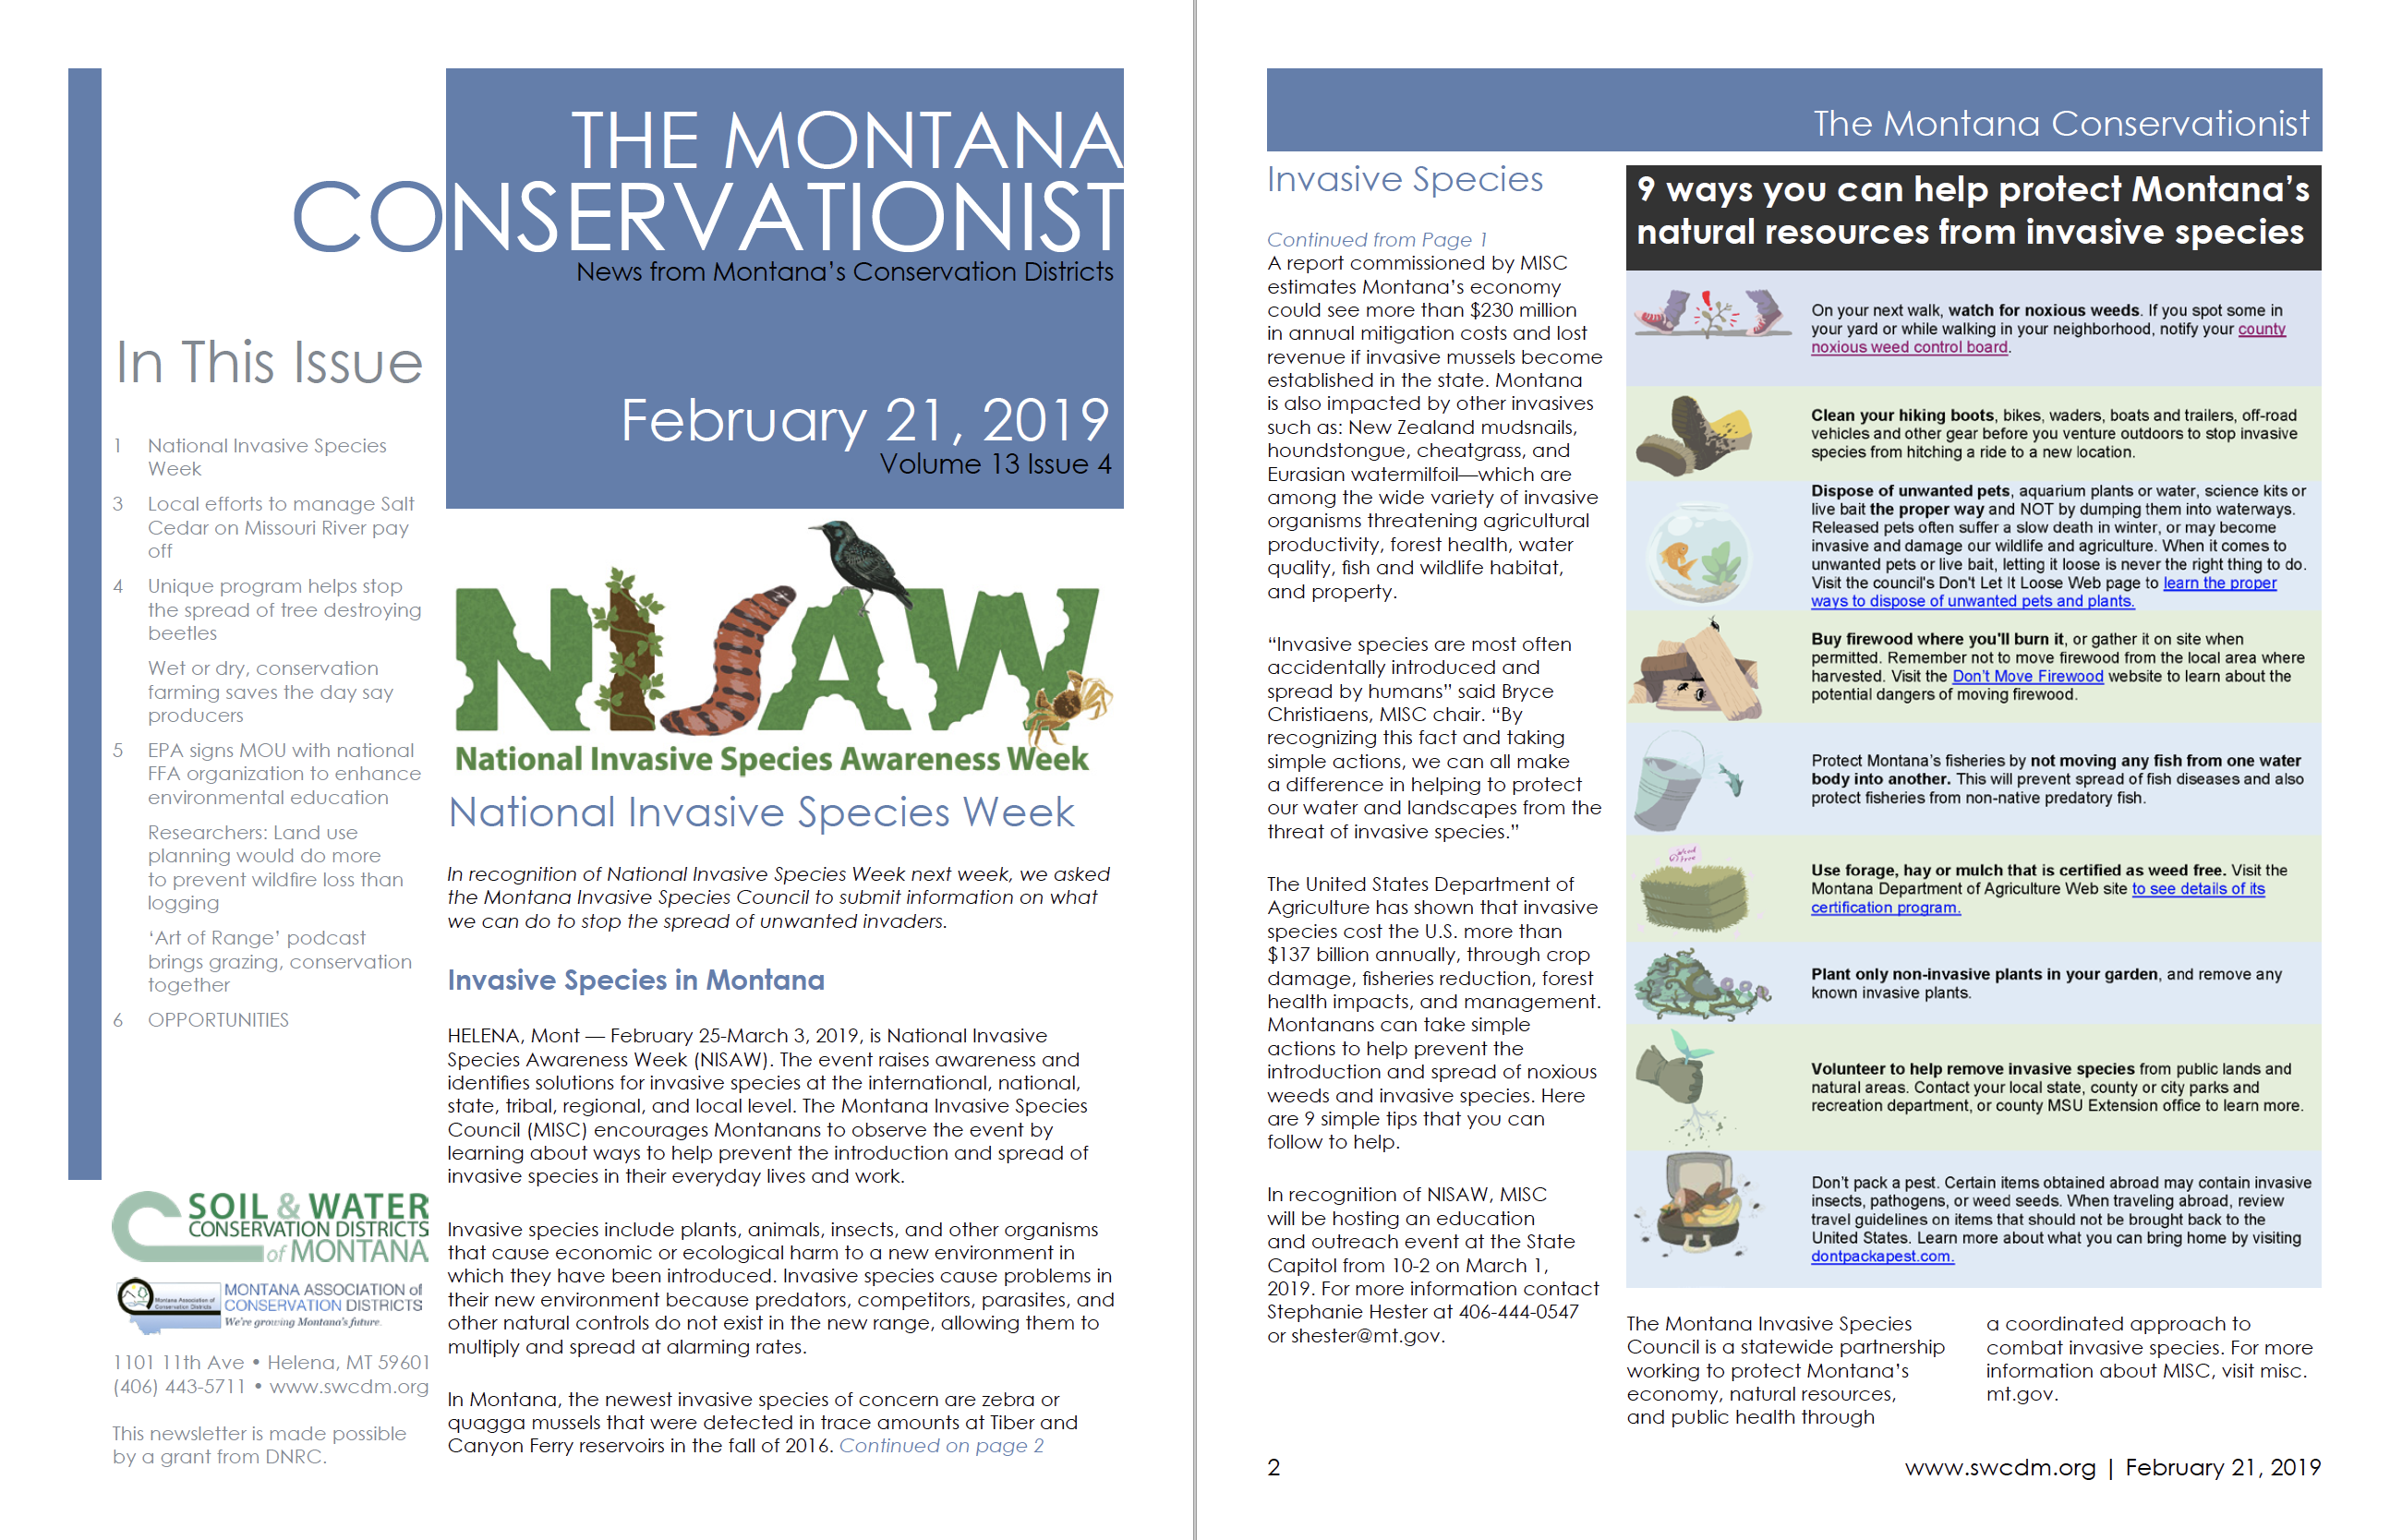 The Montana Conservationist February 21